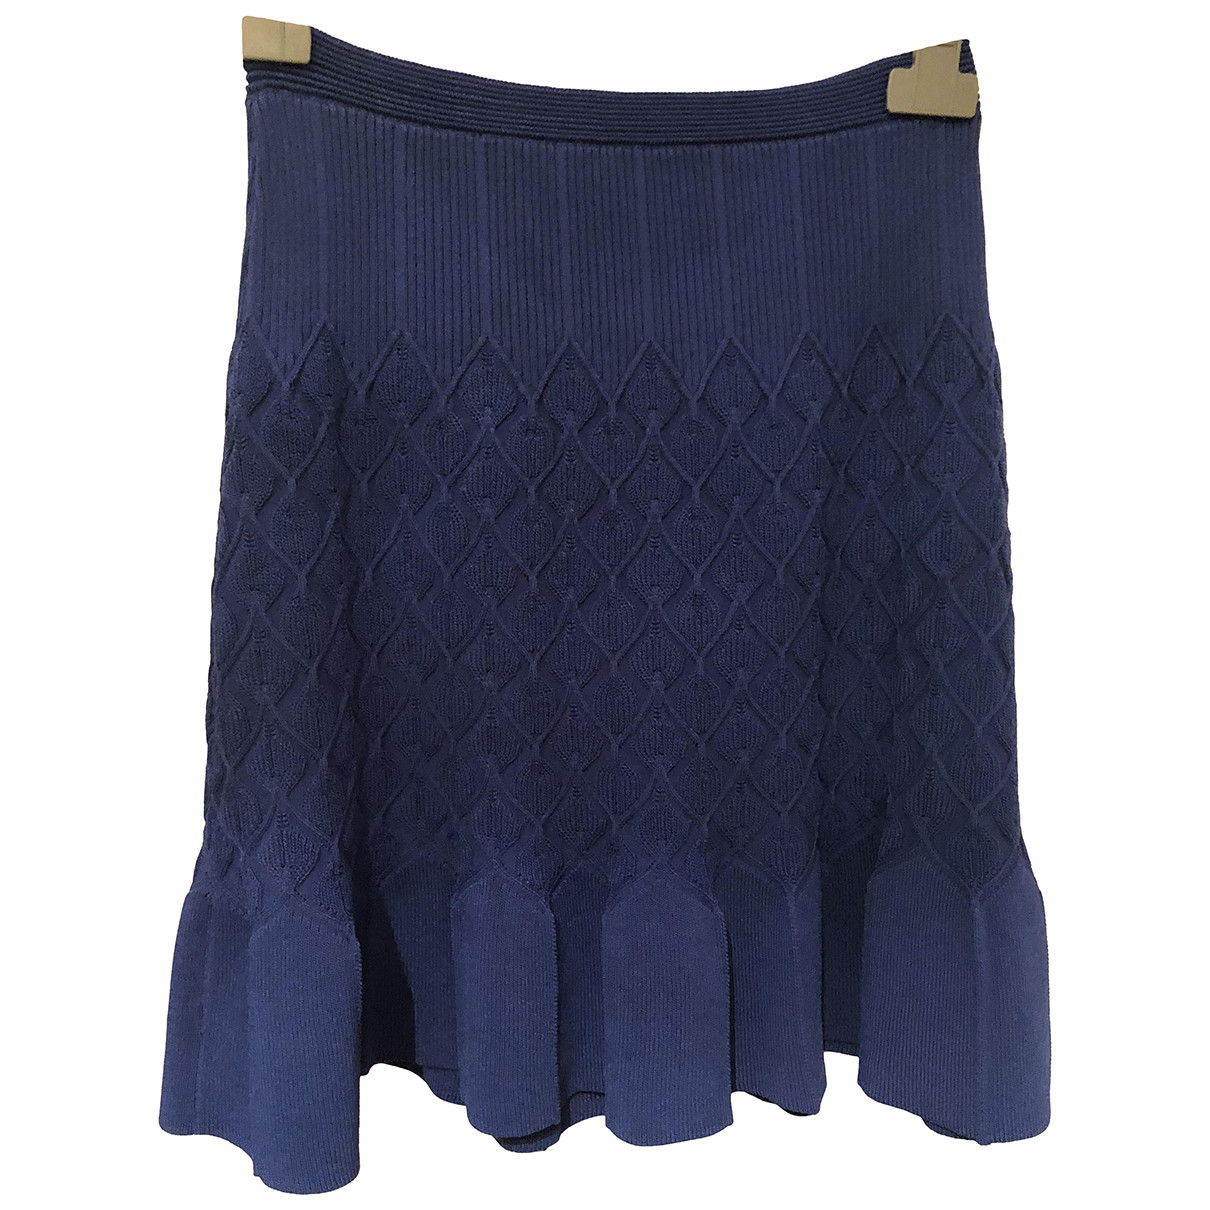 Sandro N Blue skirt for Women 1 0-5